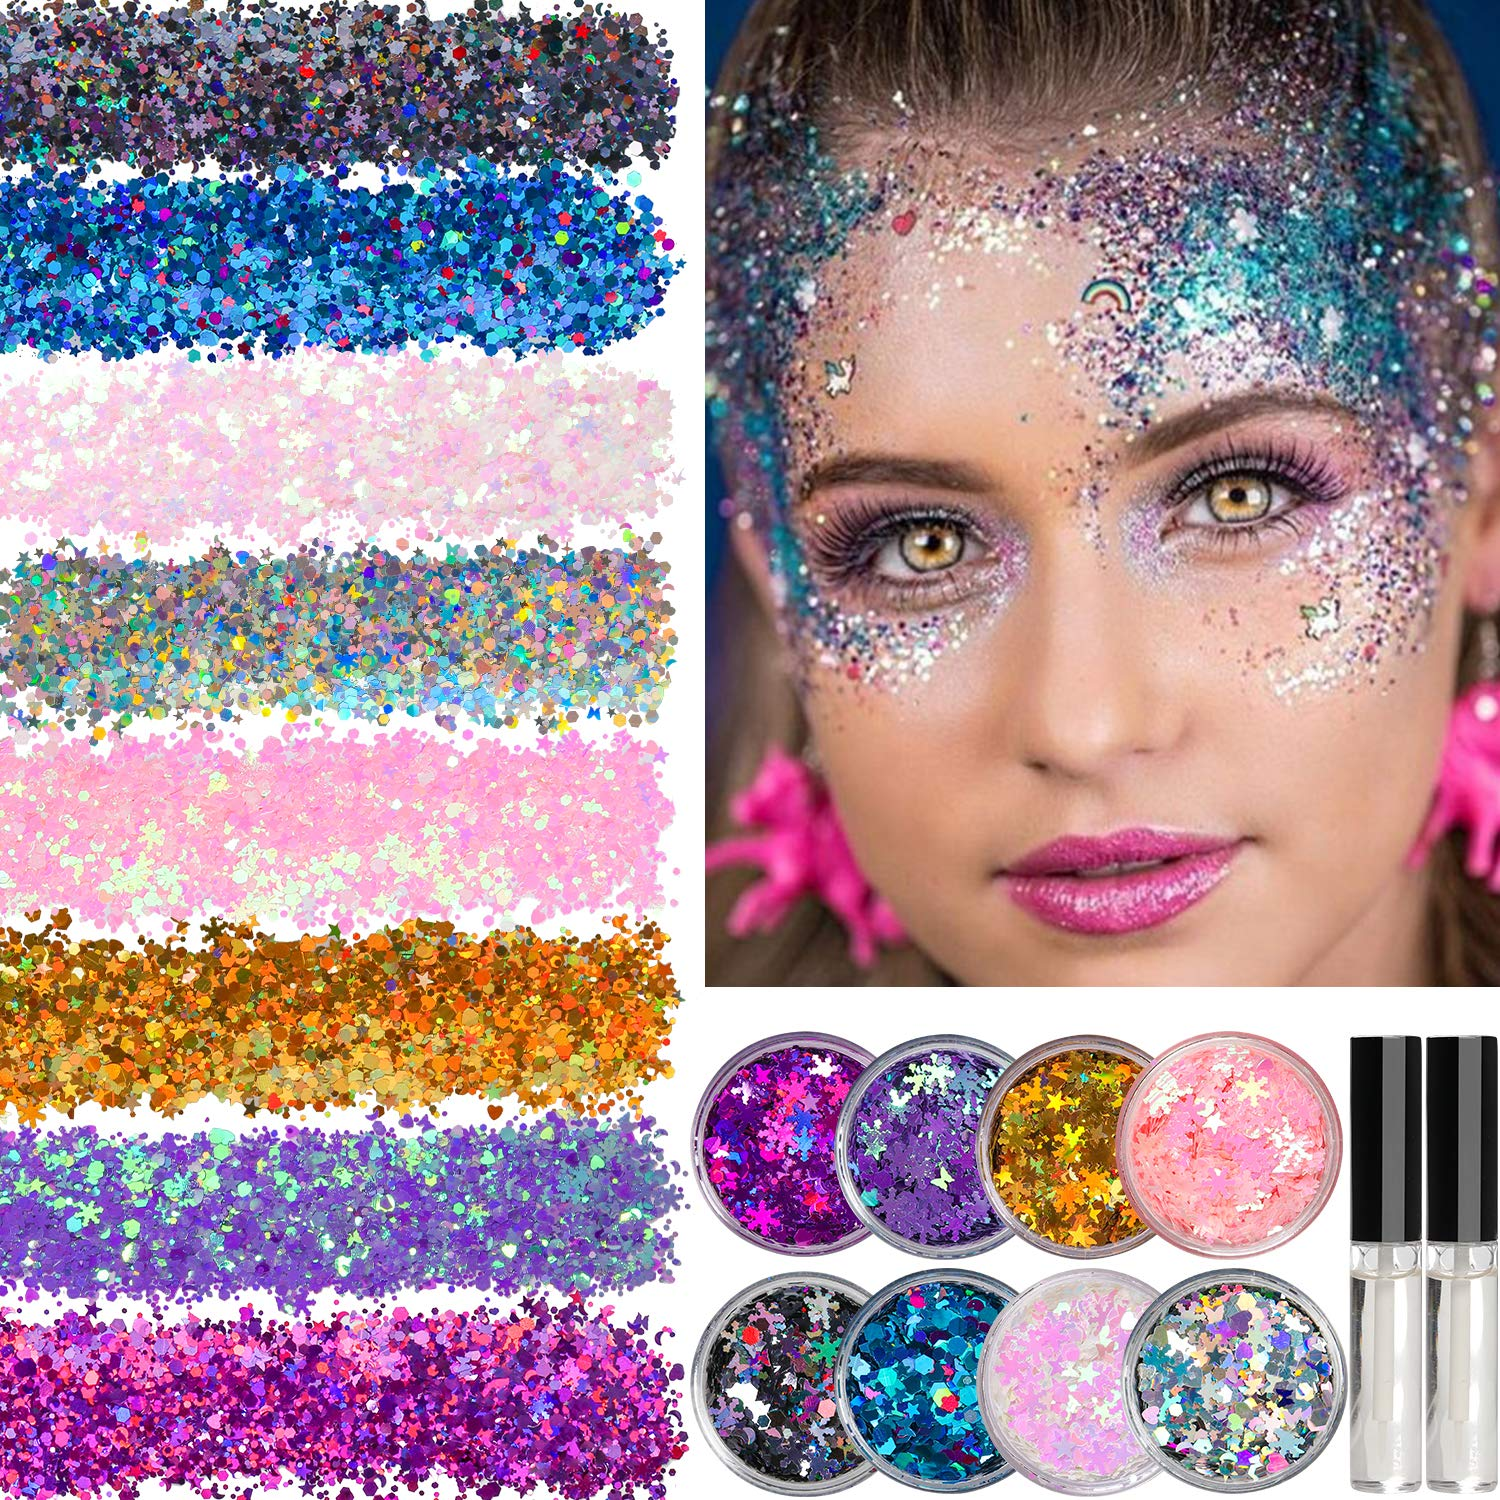 8 Jars of Cosmetic Chunky Glitter Shimmer Body Face Hair Eye Musical Festival Carnival Dance Halloween Party Beauty Makeup Temporary Tattoos Multicolored  40g 1 4oz  FREE Quick Dry Glitter Glue 10ml